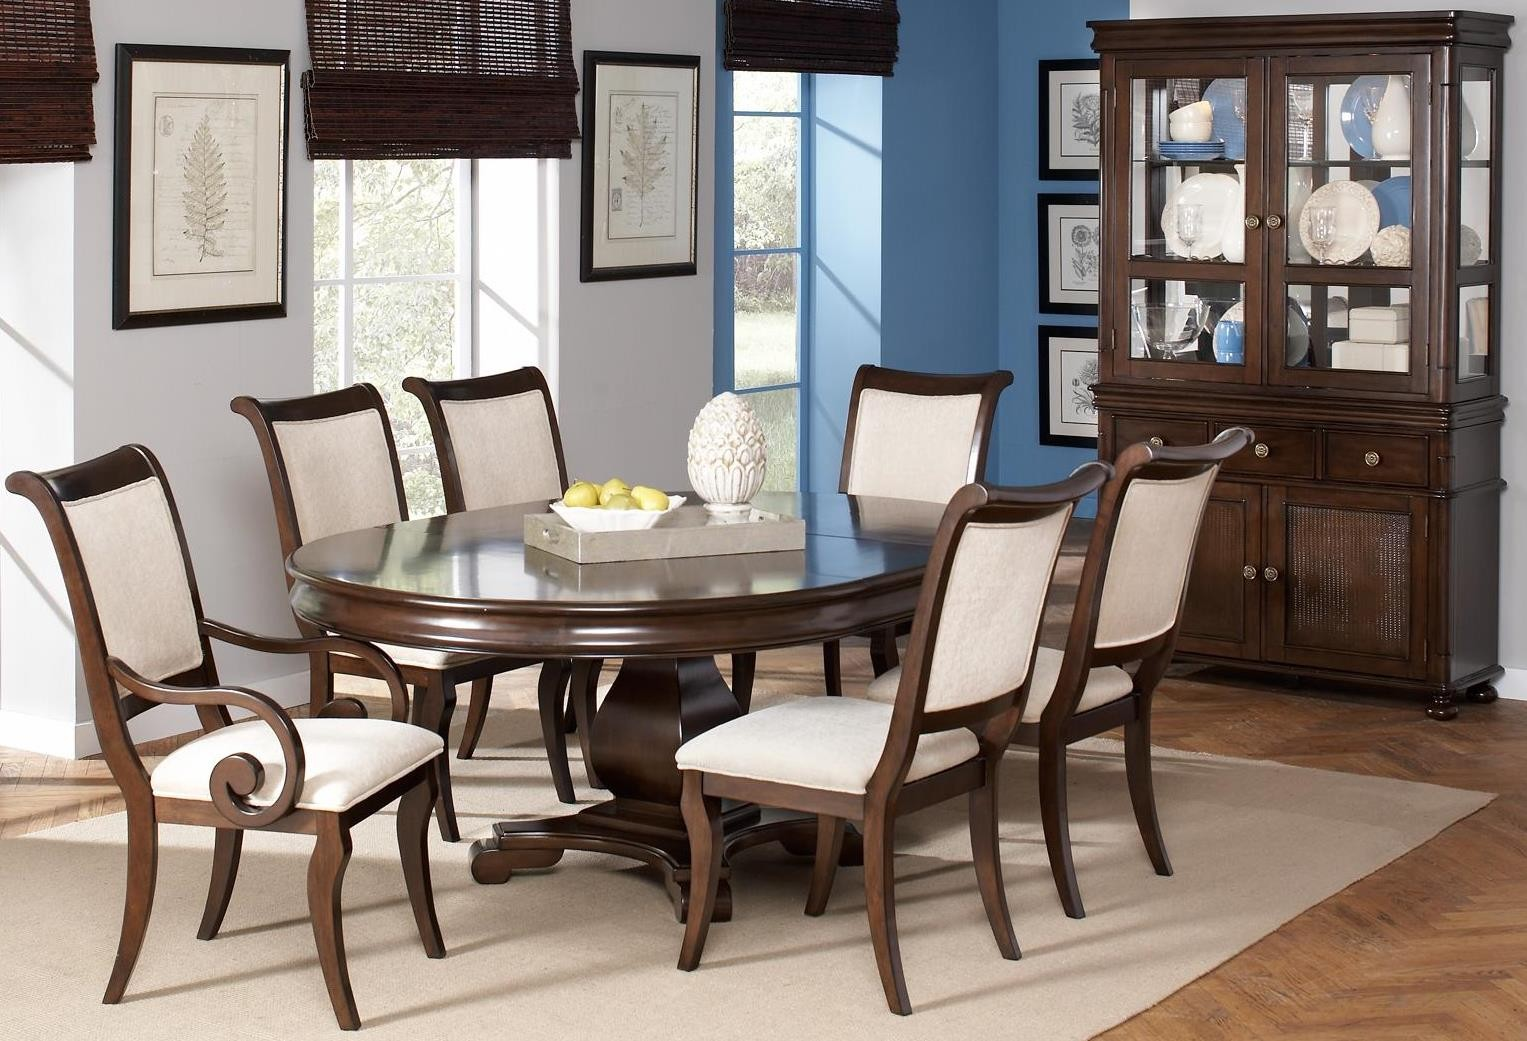 harris oval dining room set from coaster 104111 coleman furniture